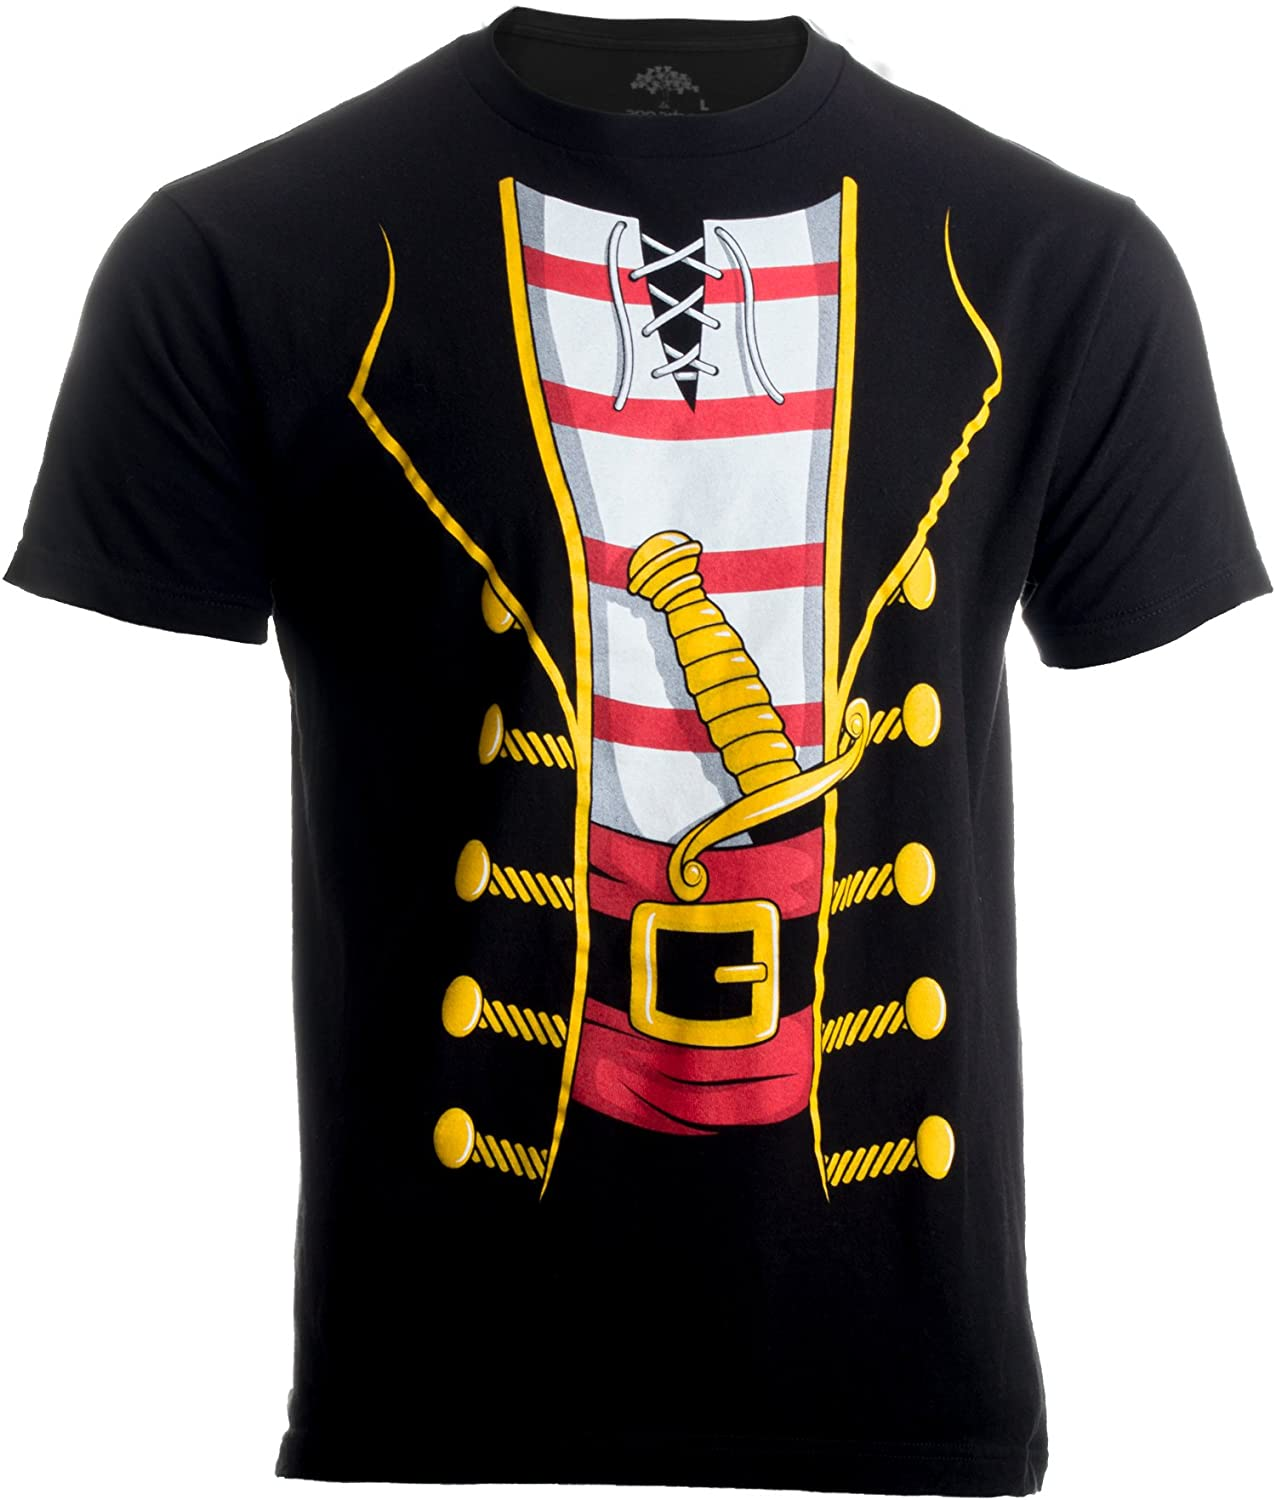 Pirate Buccanneer | Jumbo Print Novelty Halloween Costume Unisex T-shirt Ann Arbor T-shirt Co. 0-big_pirate-man